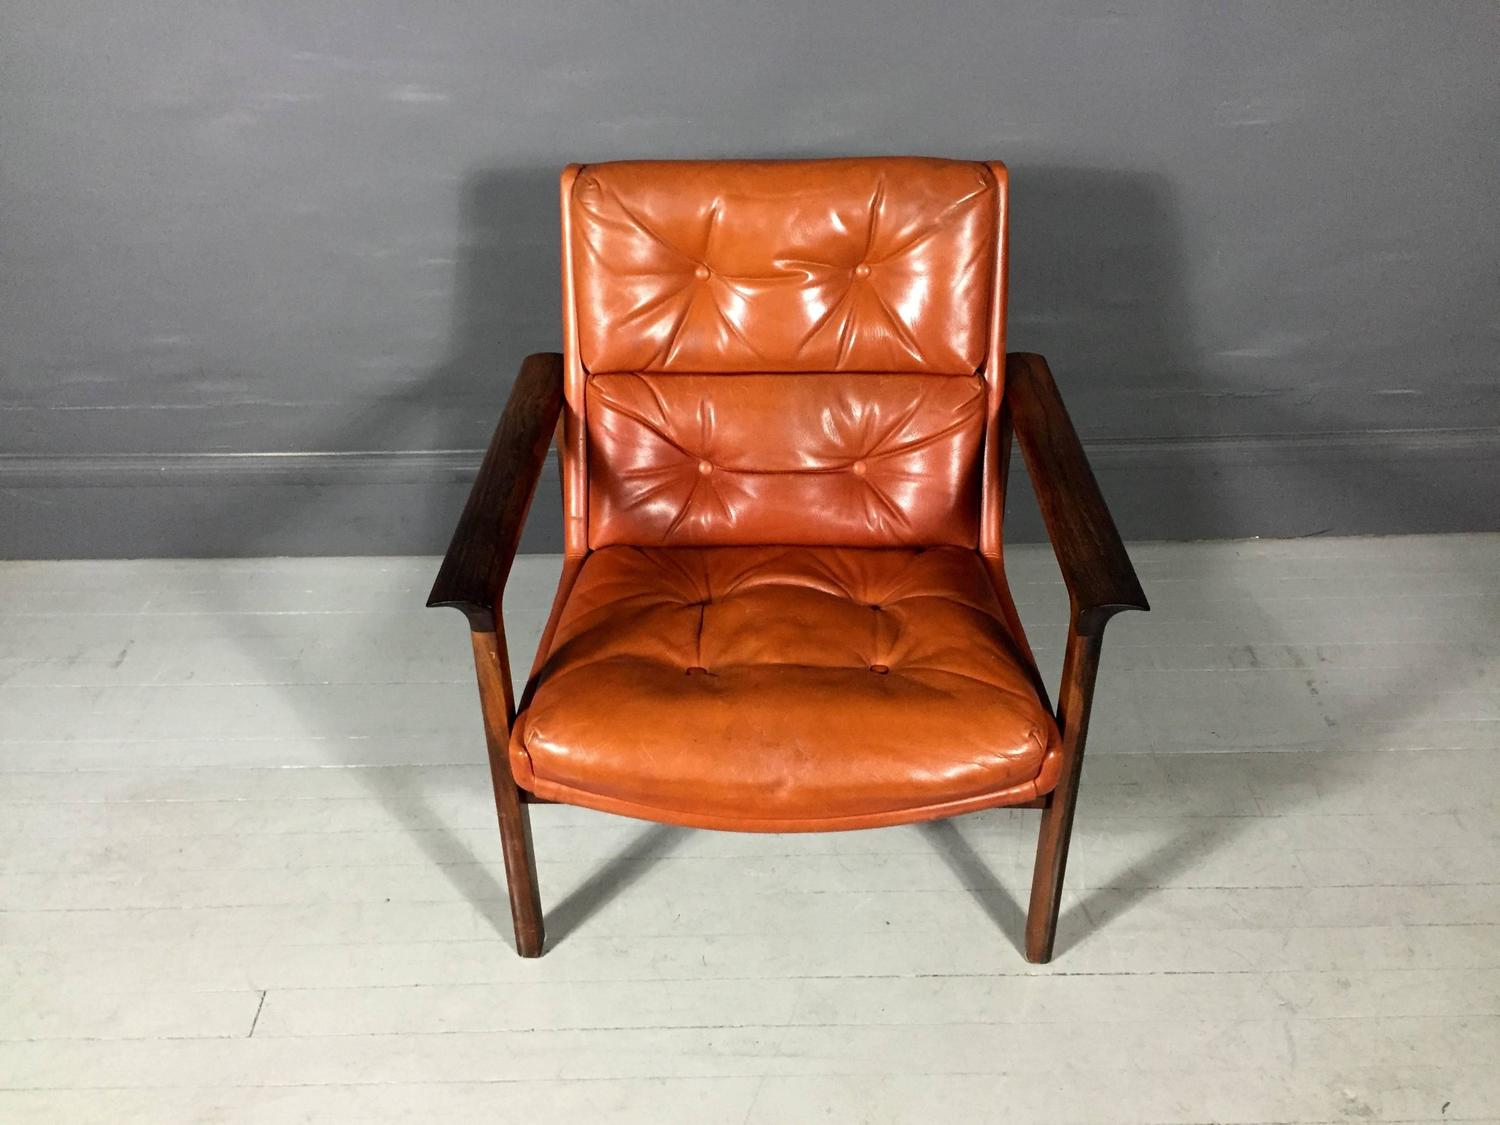 Rosewood and Orange Leather Lounge Chair Fredrik Kayser Norway 1959 at 1st